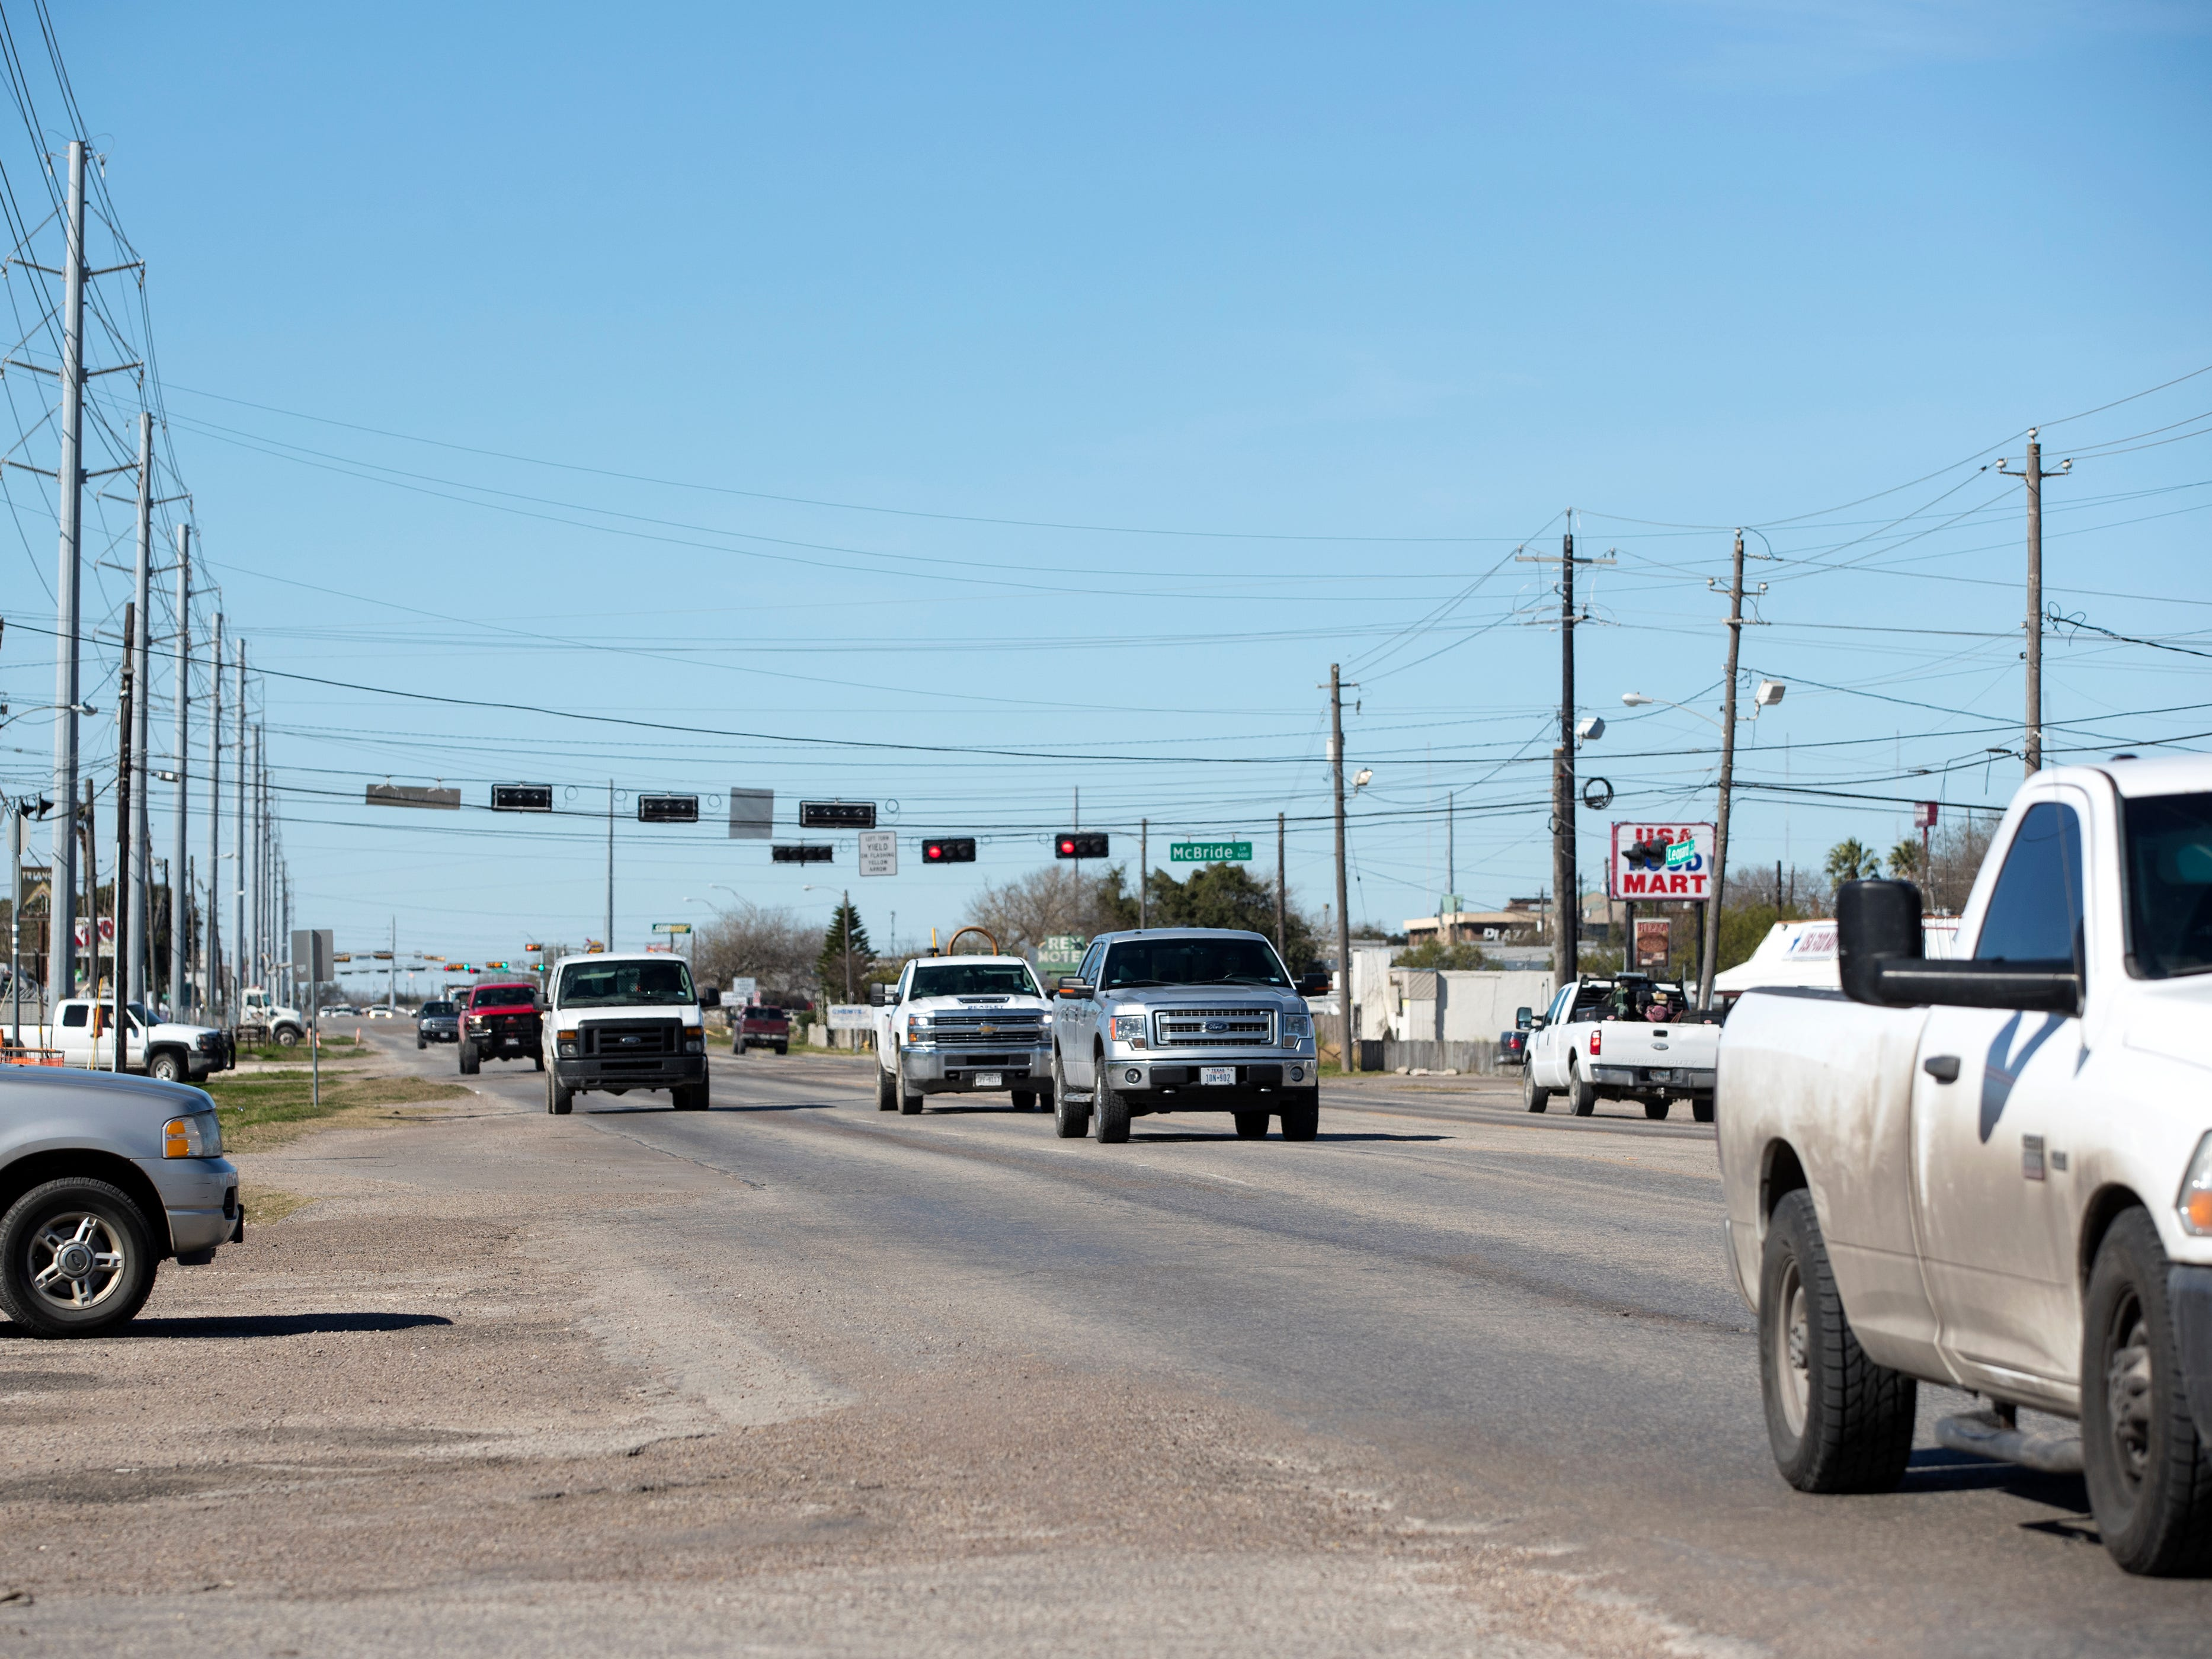 Statistics from the Corpus Christi Police Department show that a high number of auto-pedestrian accidents take place in the 5400 block of Leopard Street. Drivers can be seen on the street on Tuesday, January 29, 2019.